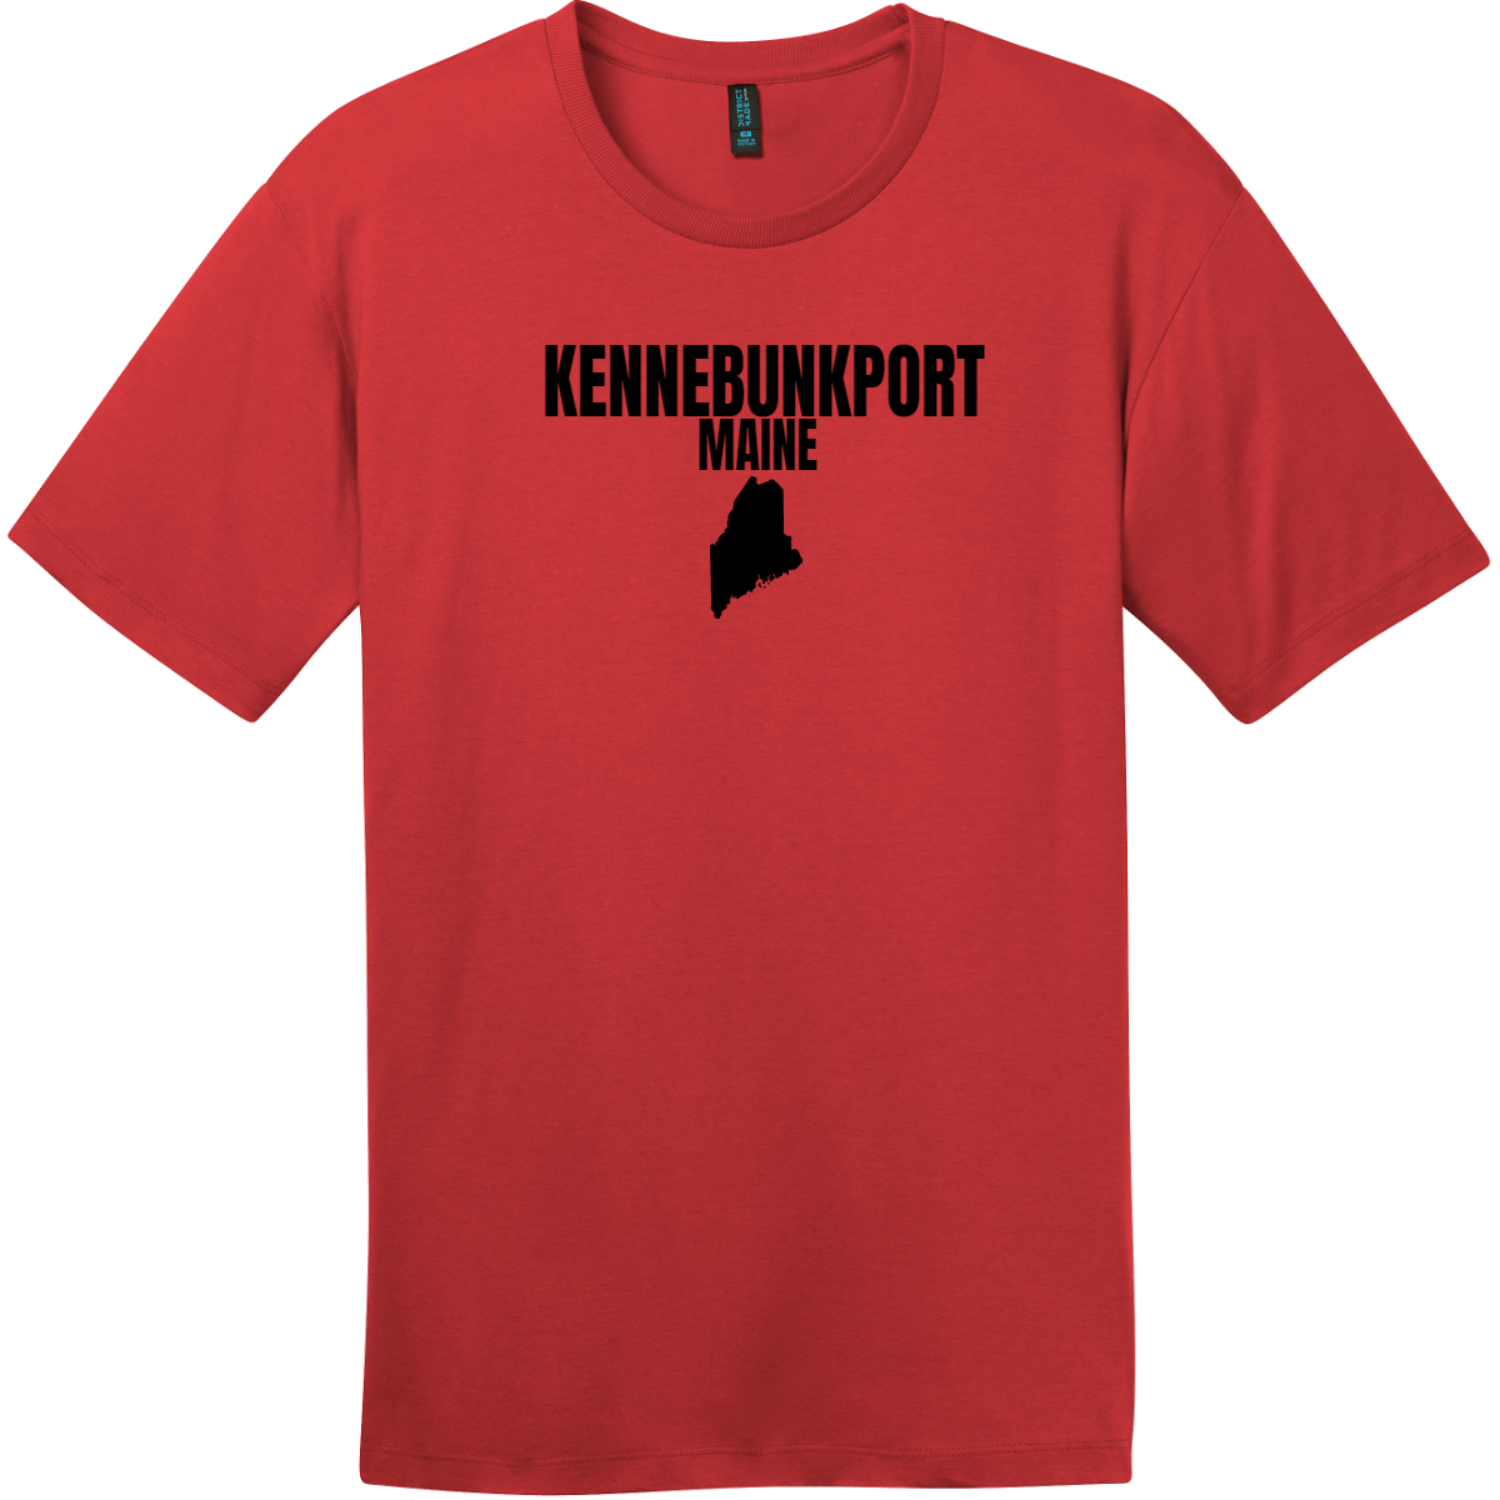 Kennebunkport Maine State T-Shirt Classic Red District Perfect Weight Tee DT104